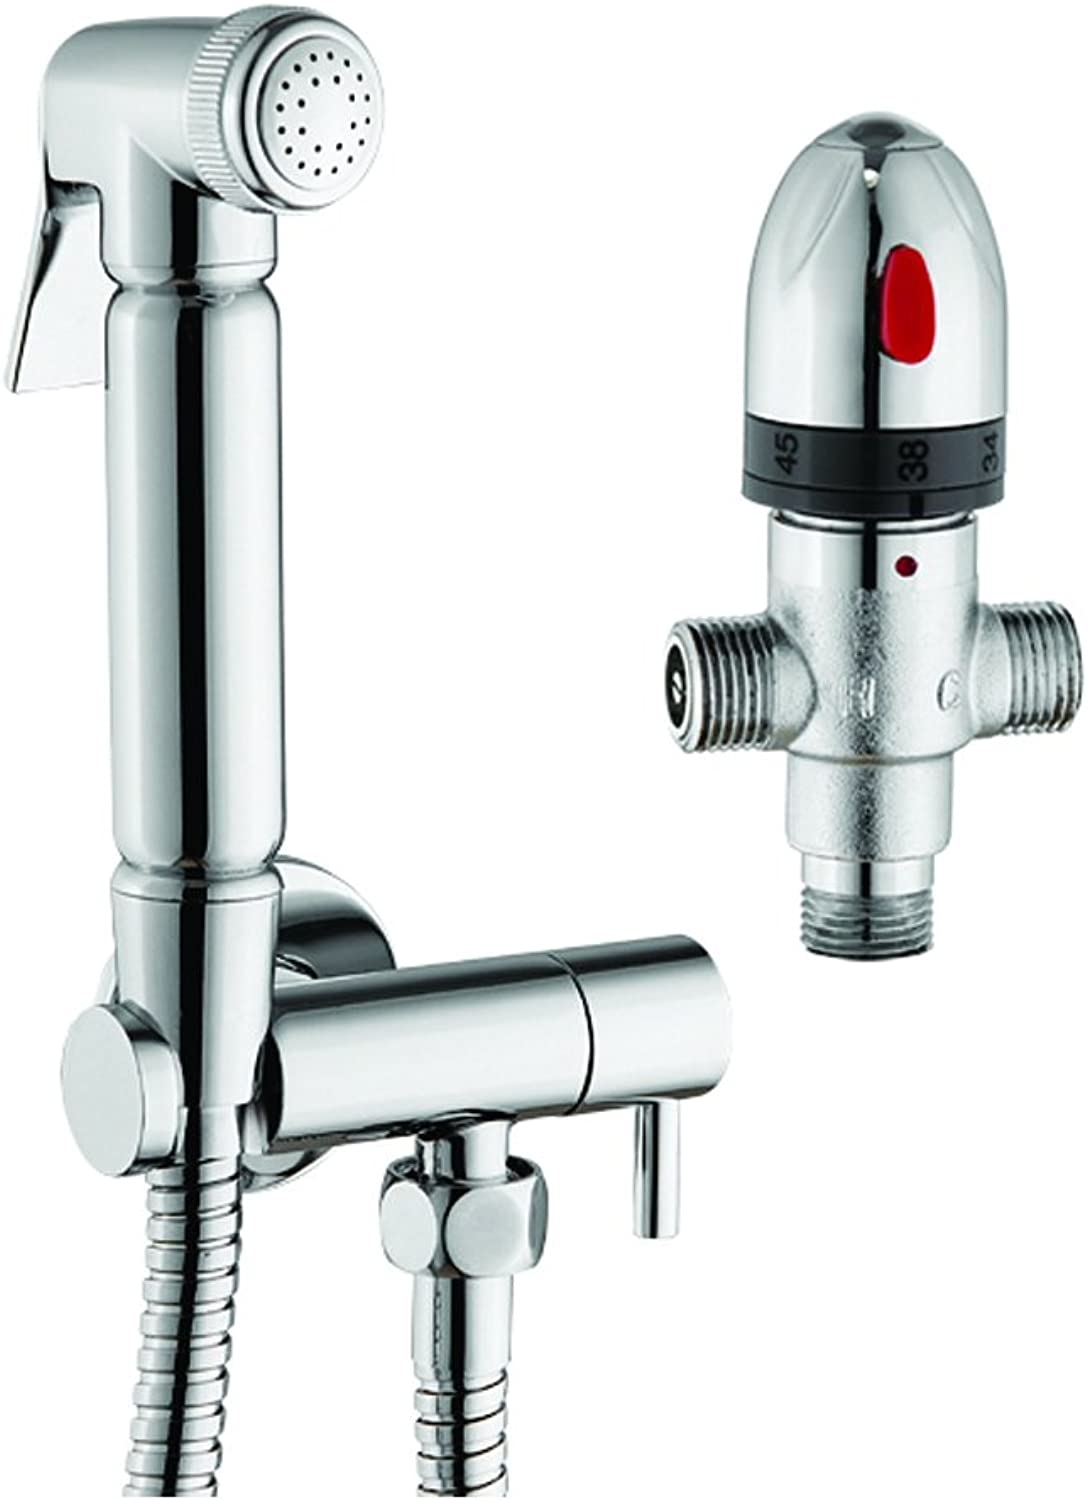 Douche Kit with Thermostatic Mixing Valve, Silver